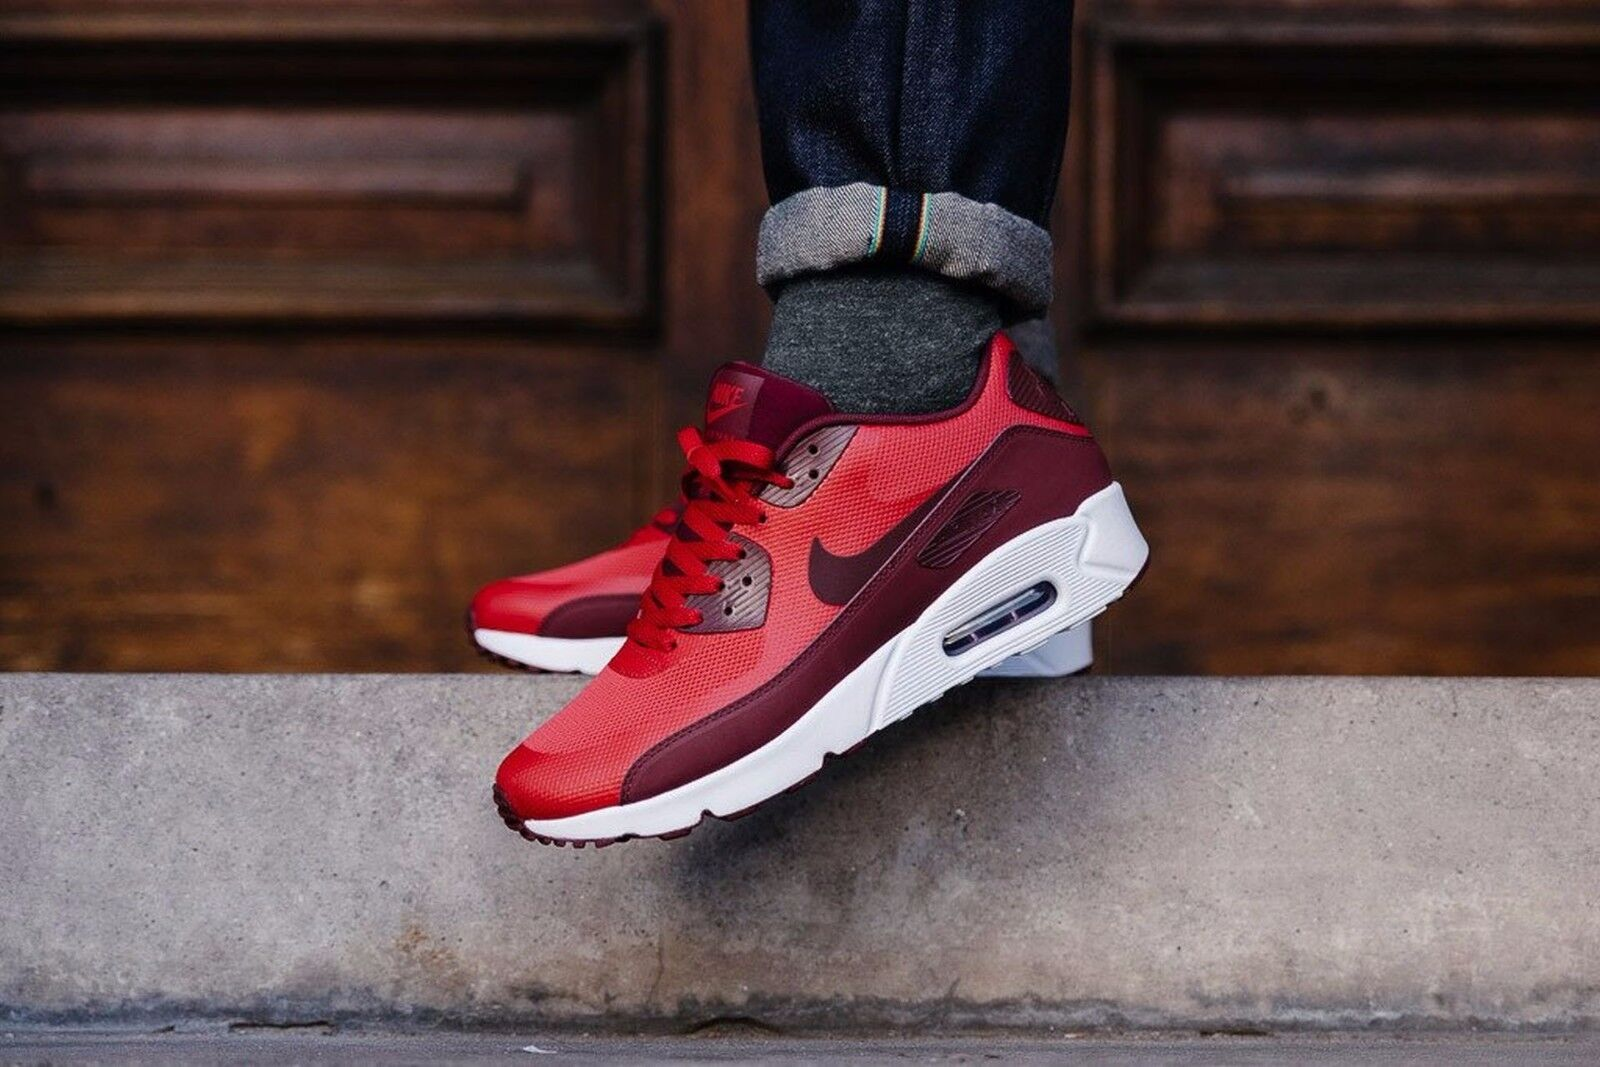 NIKE AIR MAX ULTRA 90 ULTRA MAX 2.0 ESSENTIAL 875695 600 UNIVERSITY RED/TEAM RED Mens Sz 9 2e78f1